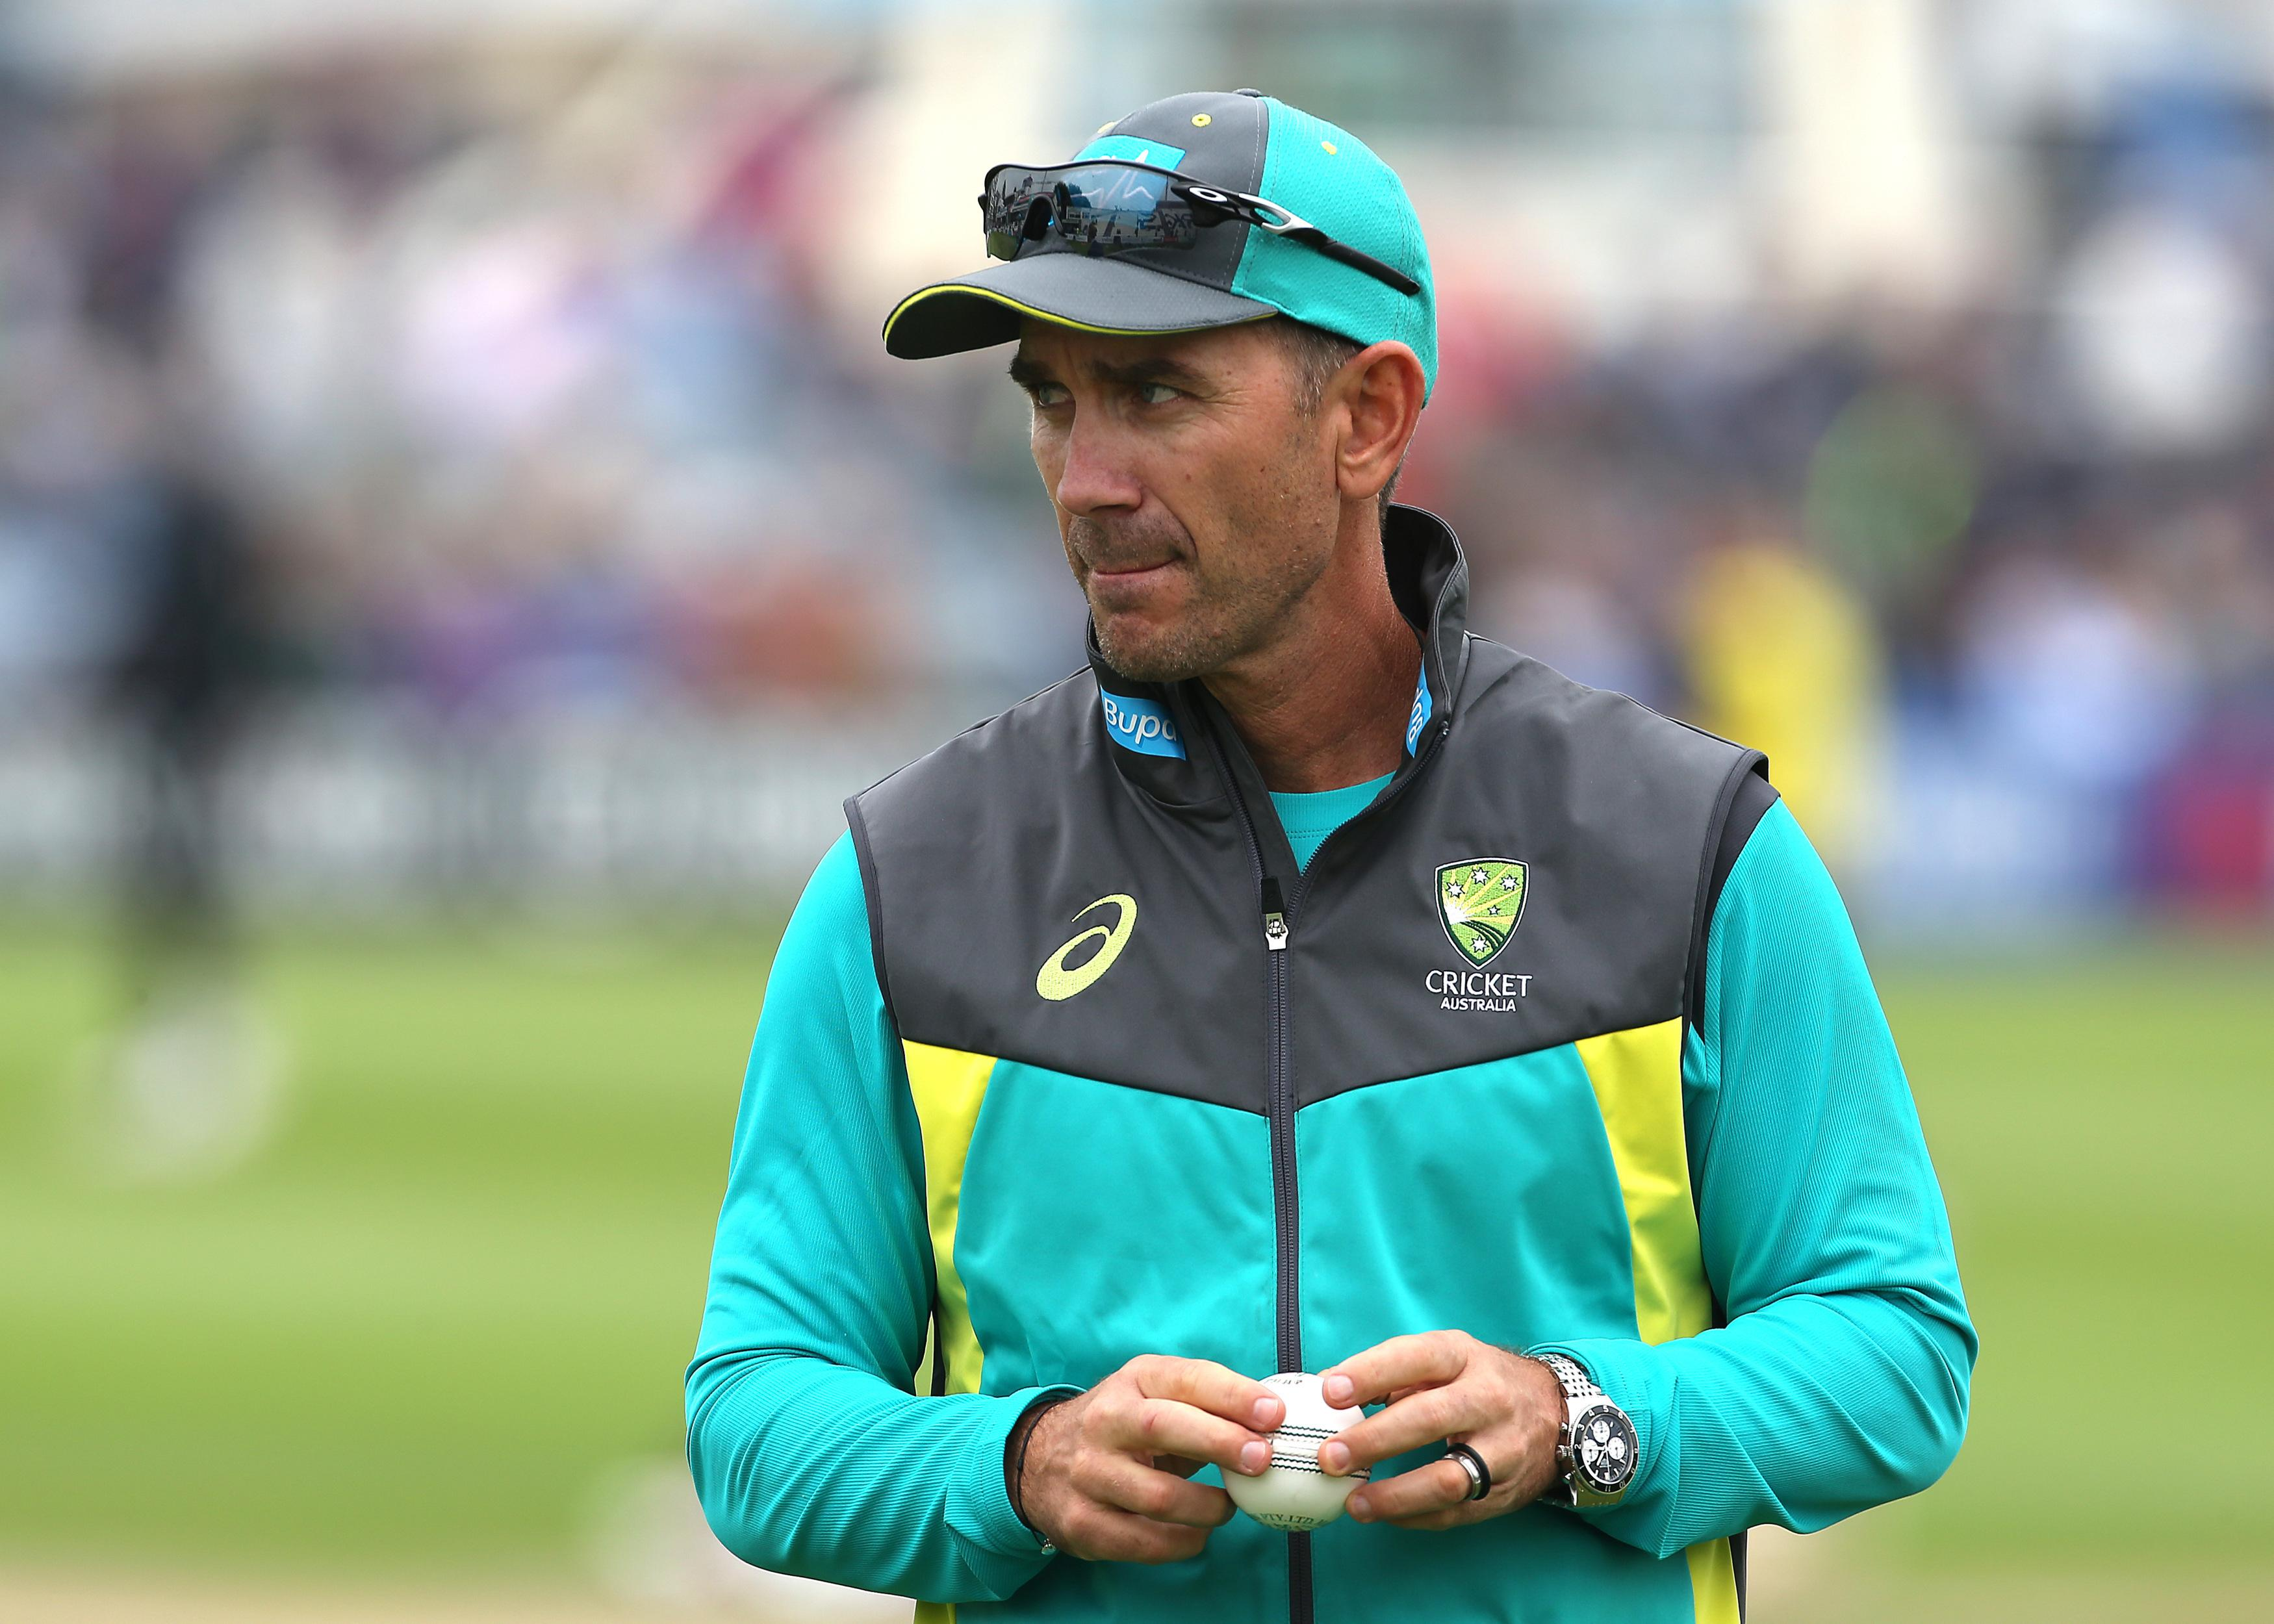 New Australia head coach Justin Langer is promising a new era